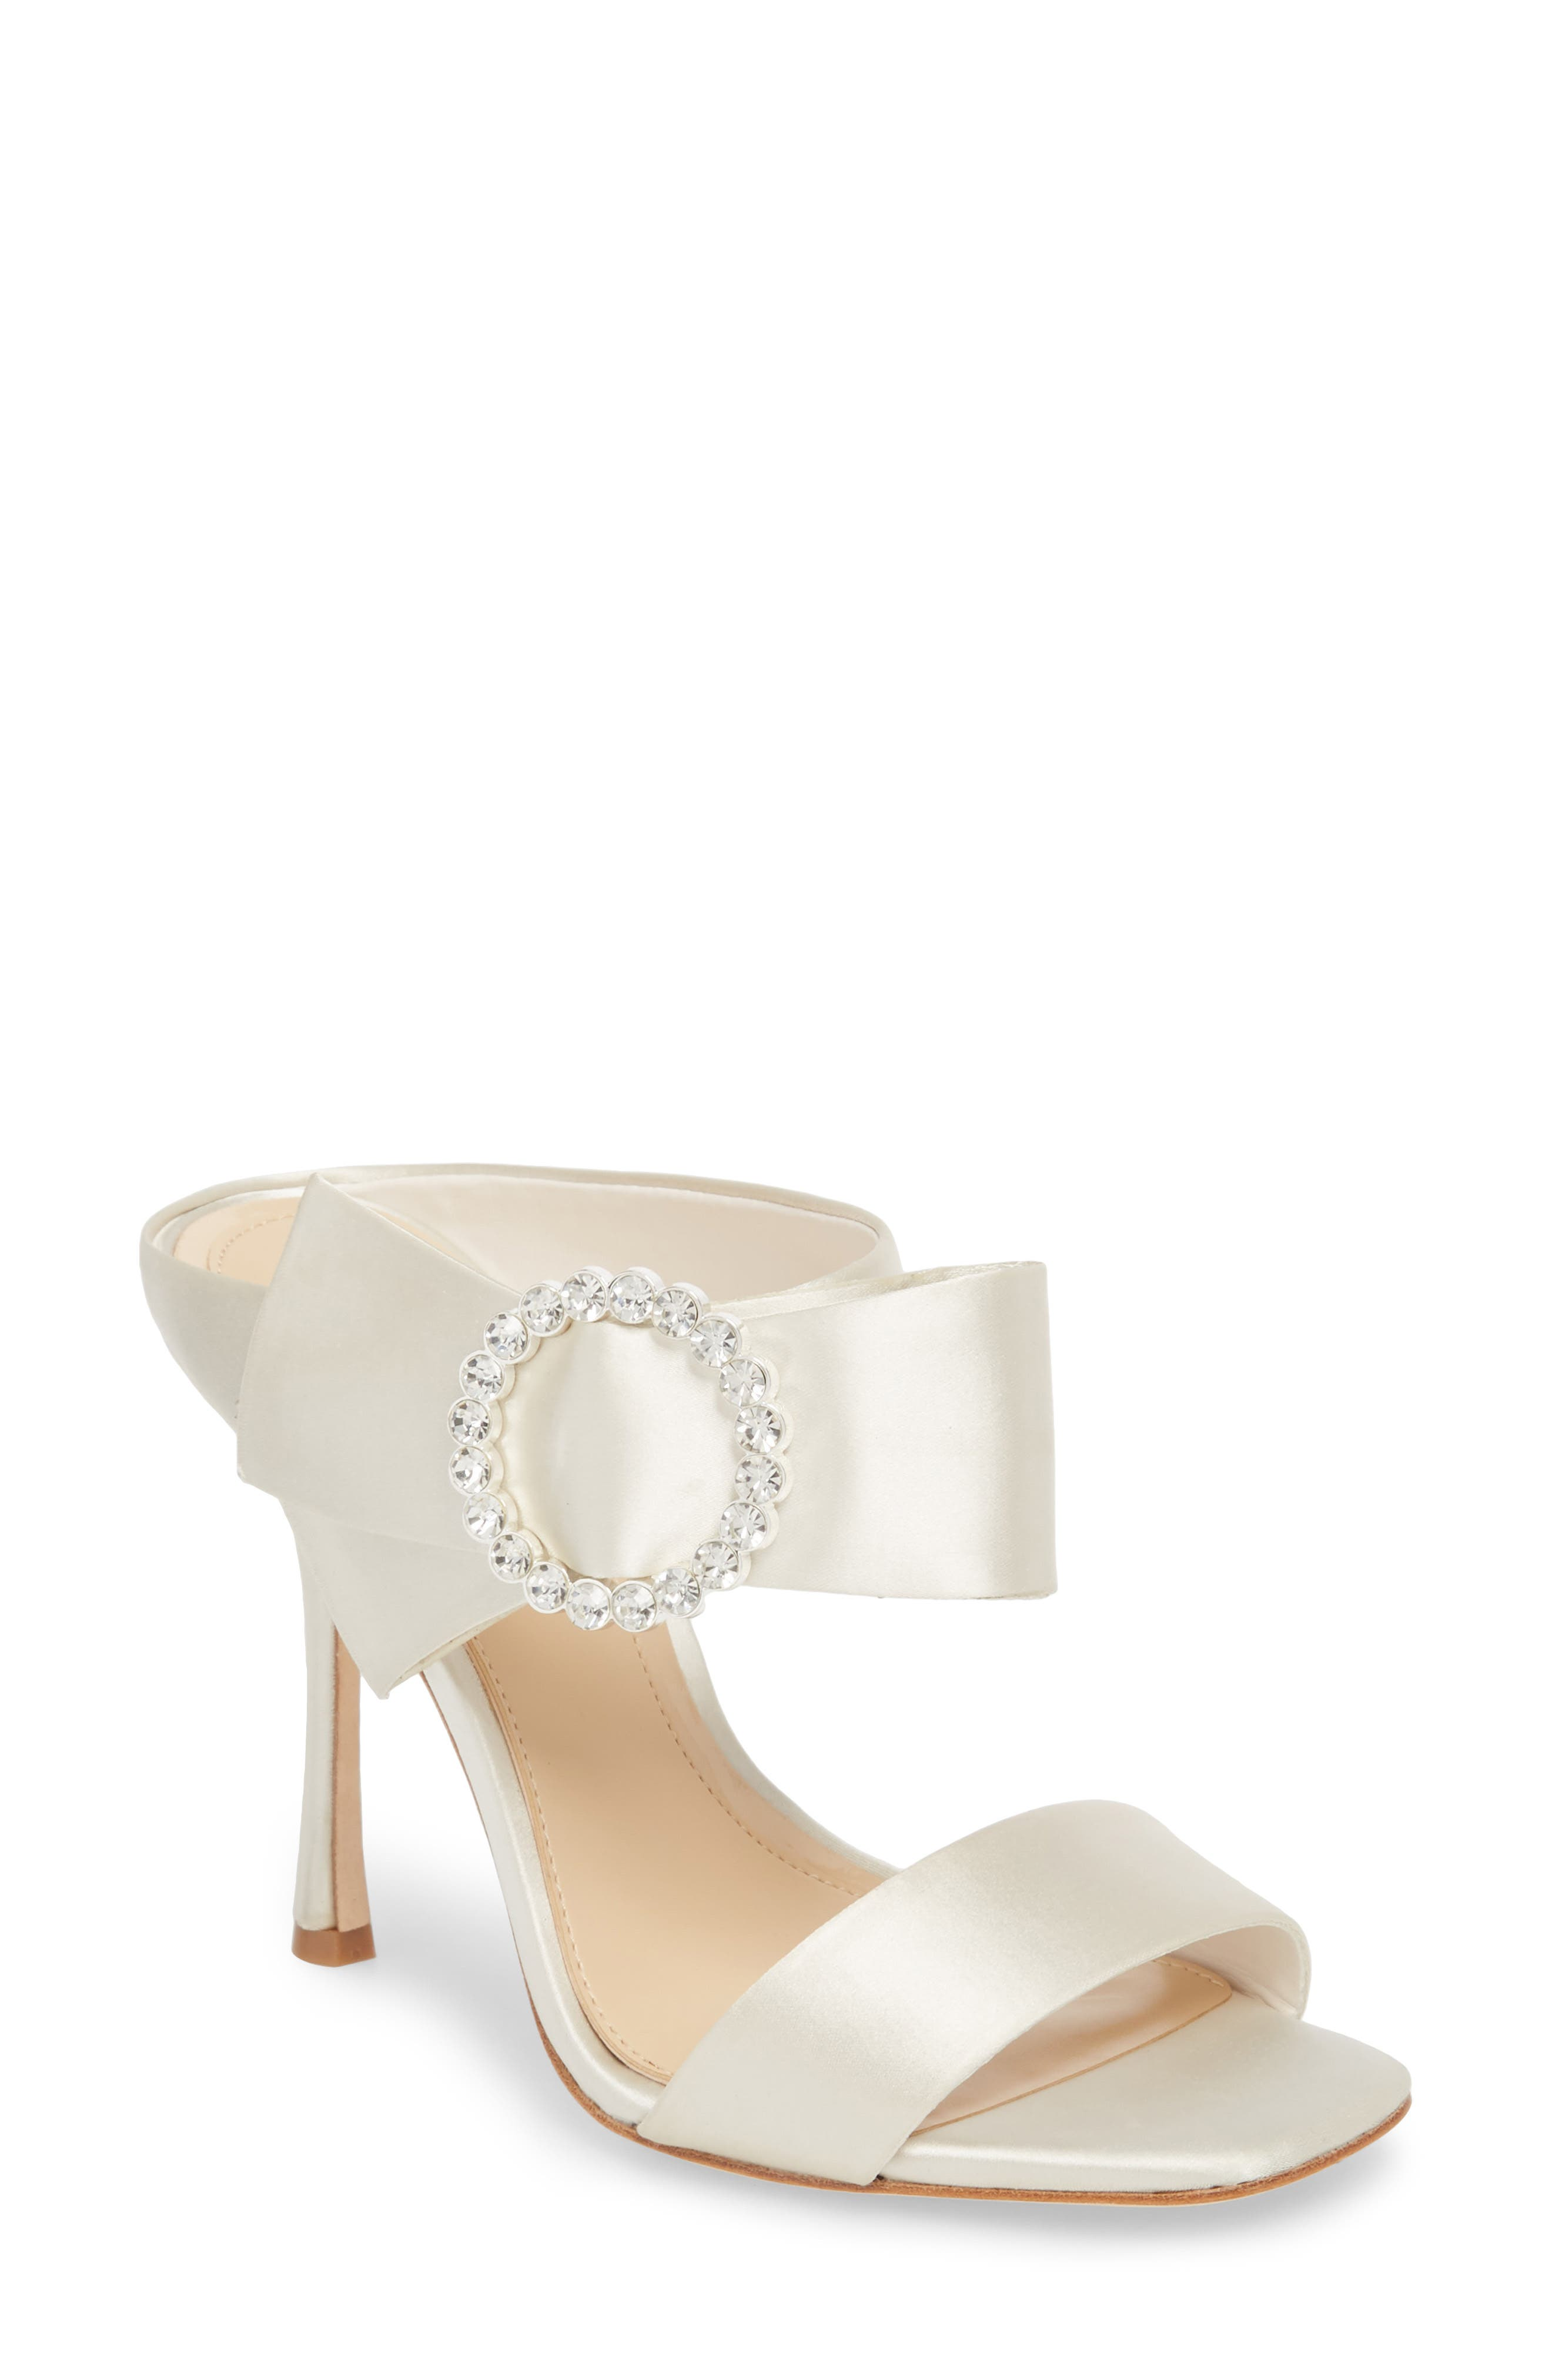 Imagine By Vince Camuto Westcott Sandal- White